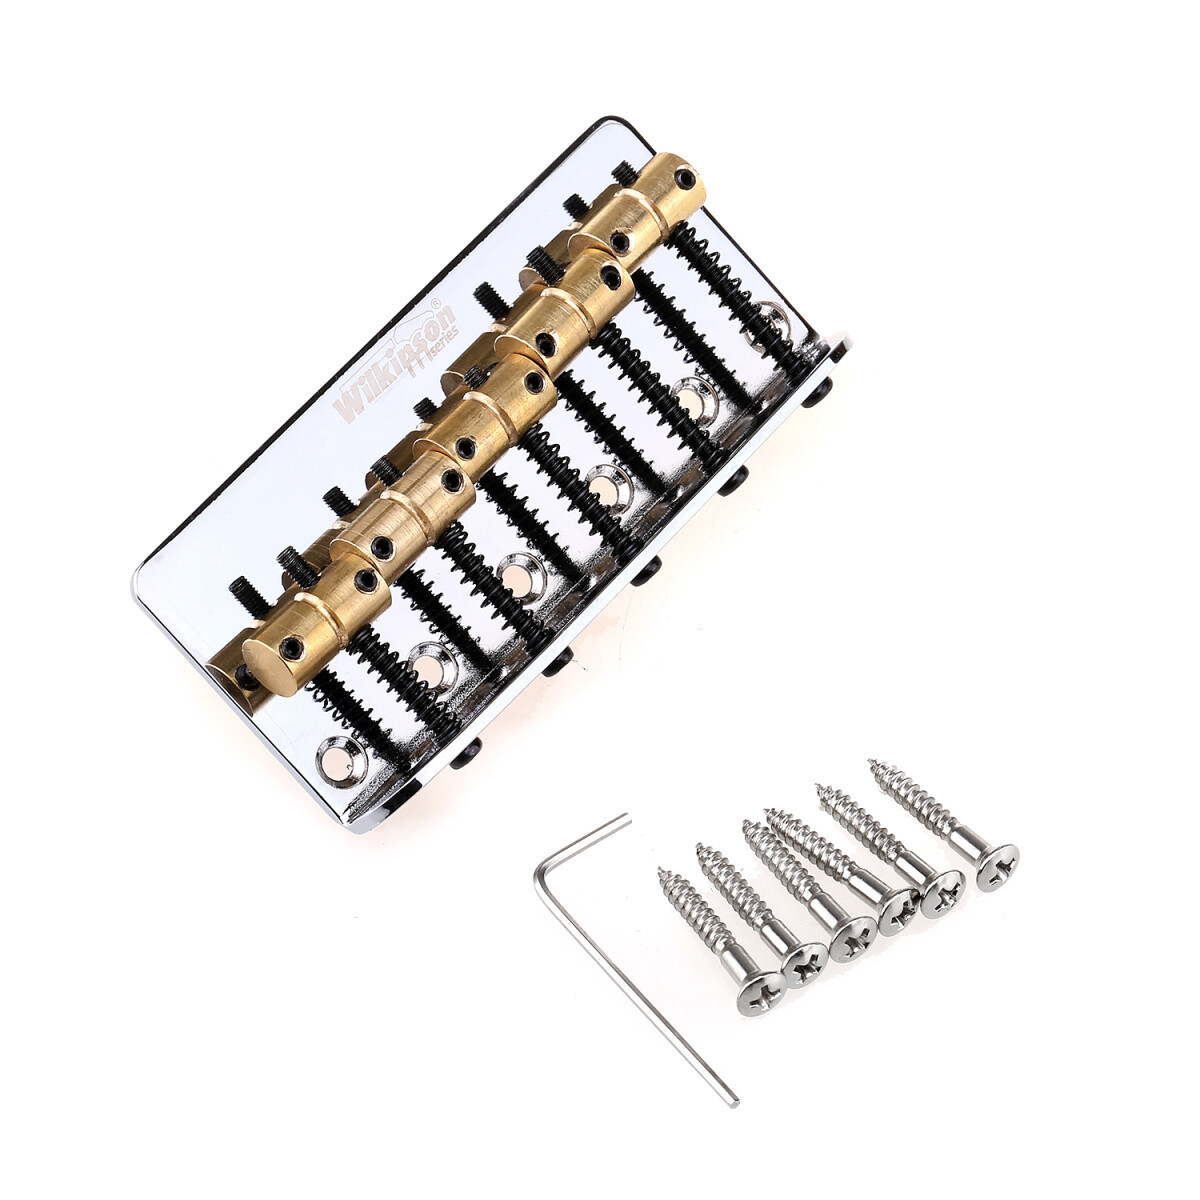 Wilkinson 76.2mm(3 inch) String Spacing 5-String Fixed Bass Bridge Brass Saddles for Precision Bass and Jazz Bass, Chrome